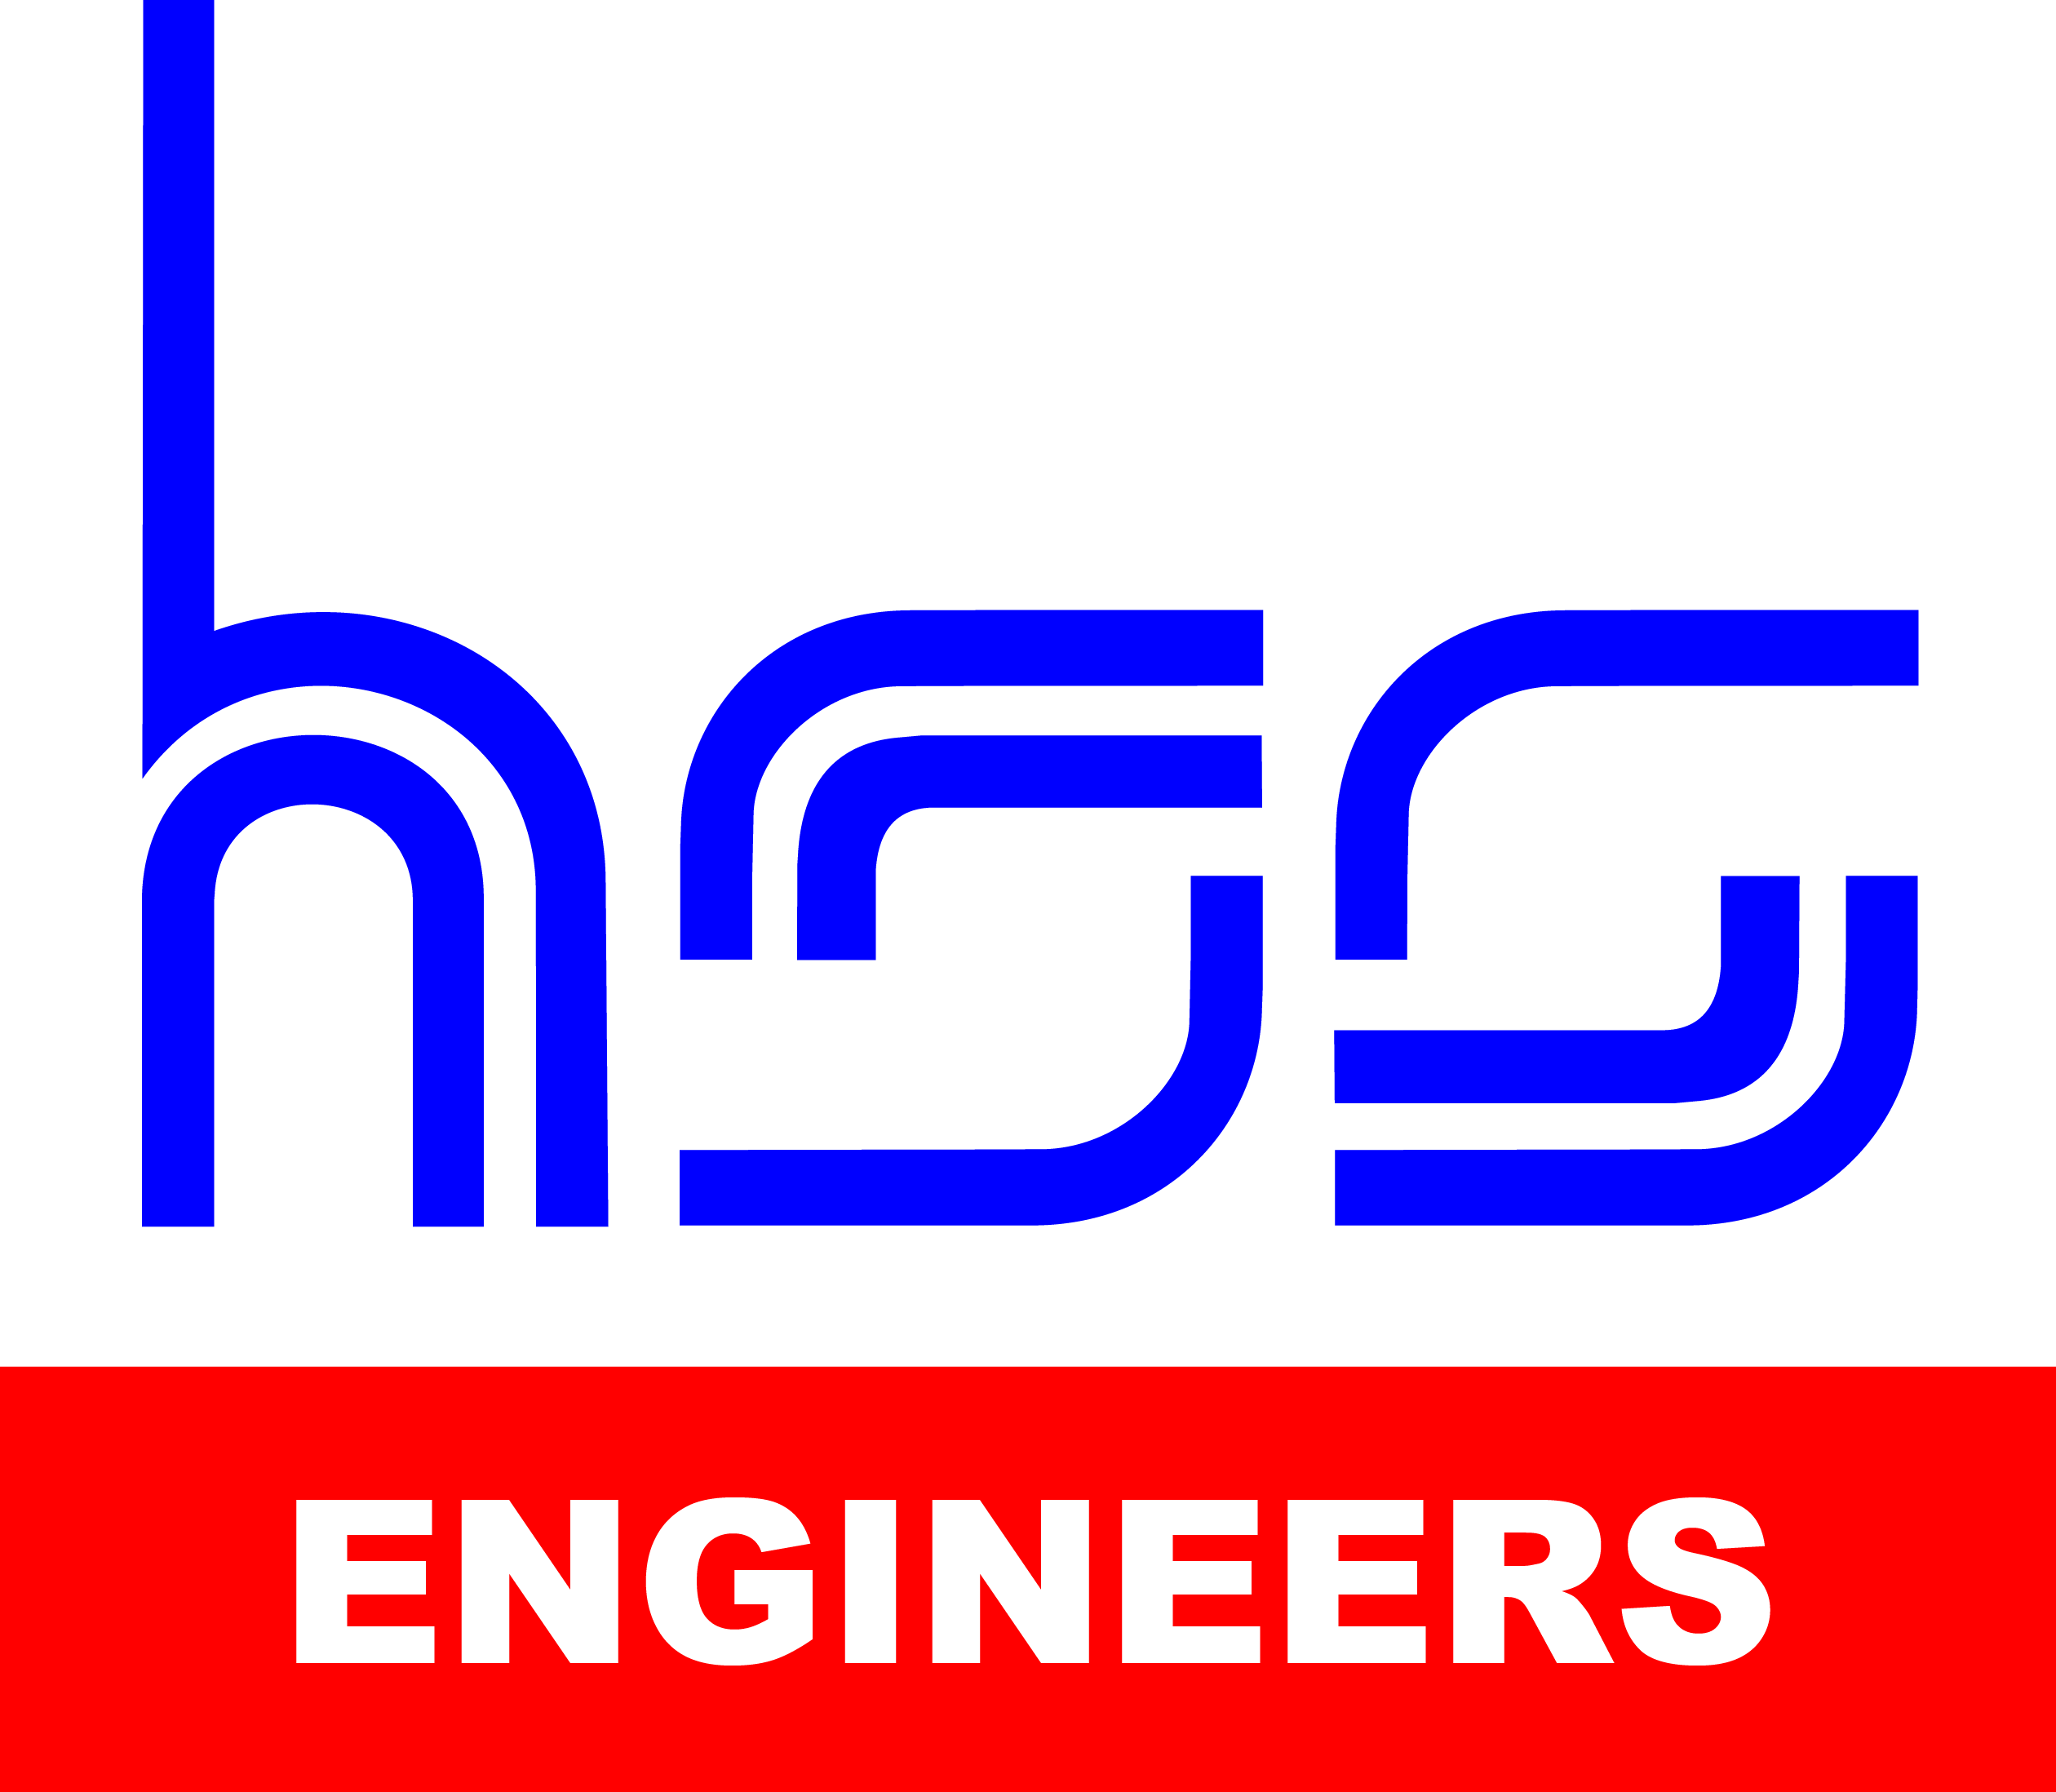 HSS Engineering